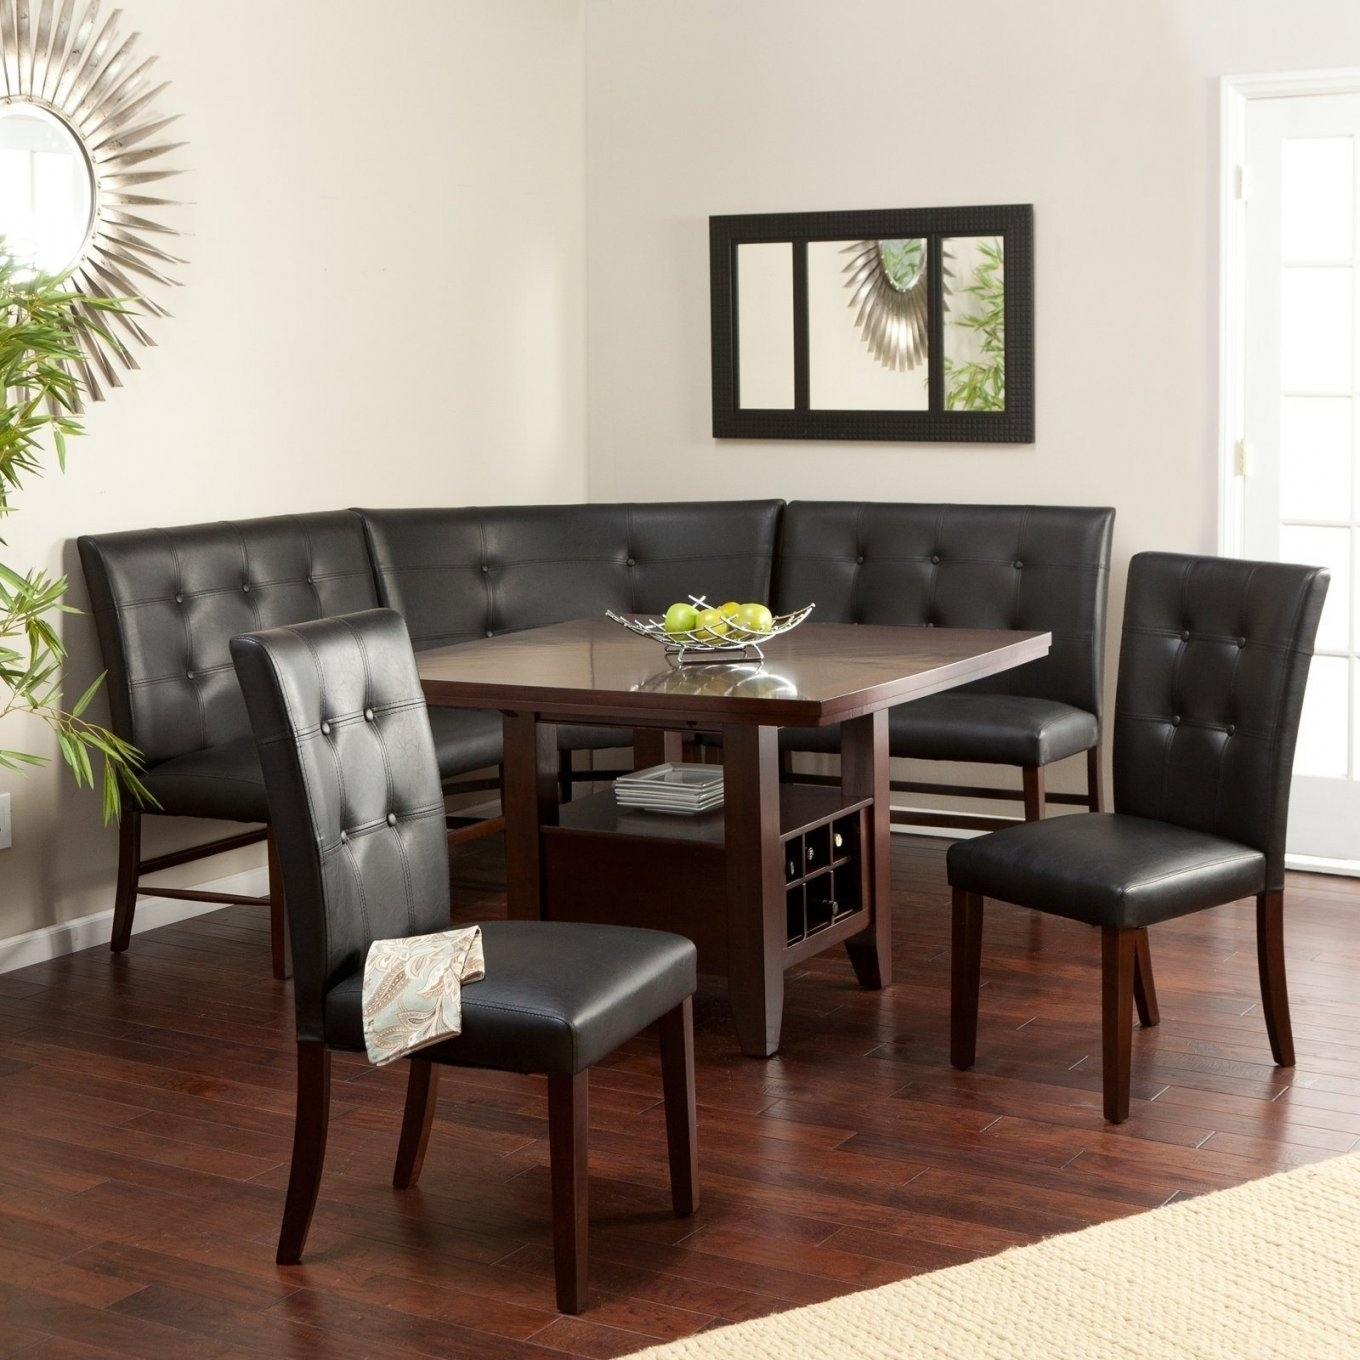 6 Person Round Dining Table Popular Tables Awesome And With Regard With Latest Round 6 Person Dining Tables (View 7 of 25)